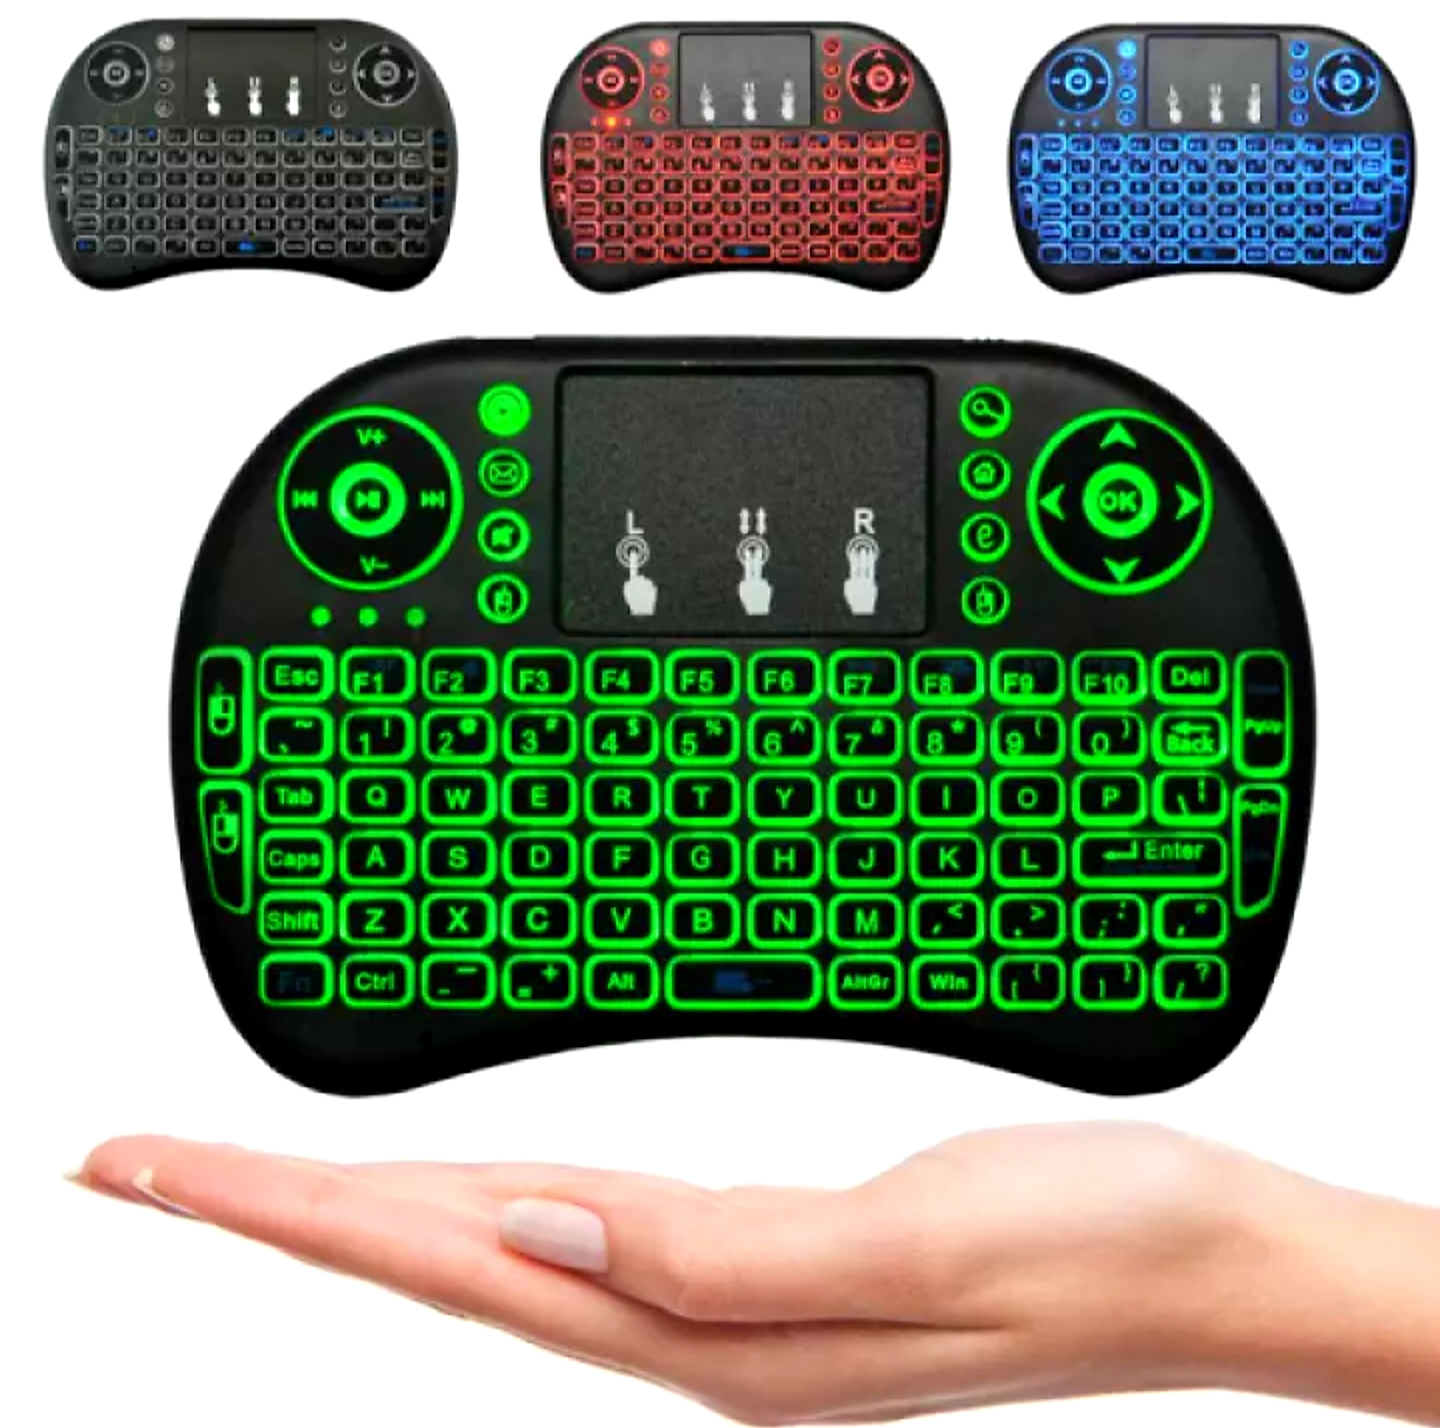 Best Wireless Keyboard for Smart LED TV Mobile Mini Touchpad Mouse RF 500 Warranted Bluetooth Gaming RGB Lighting Backlight LED Android TV Box Fancy Stylish Design Laptop Computer PC